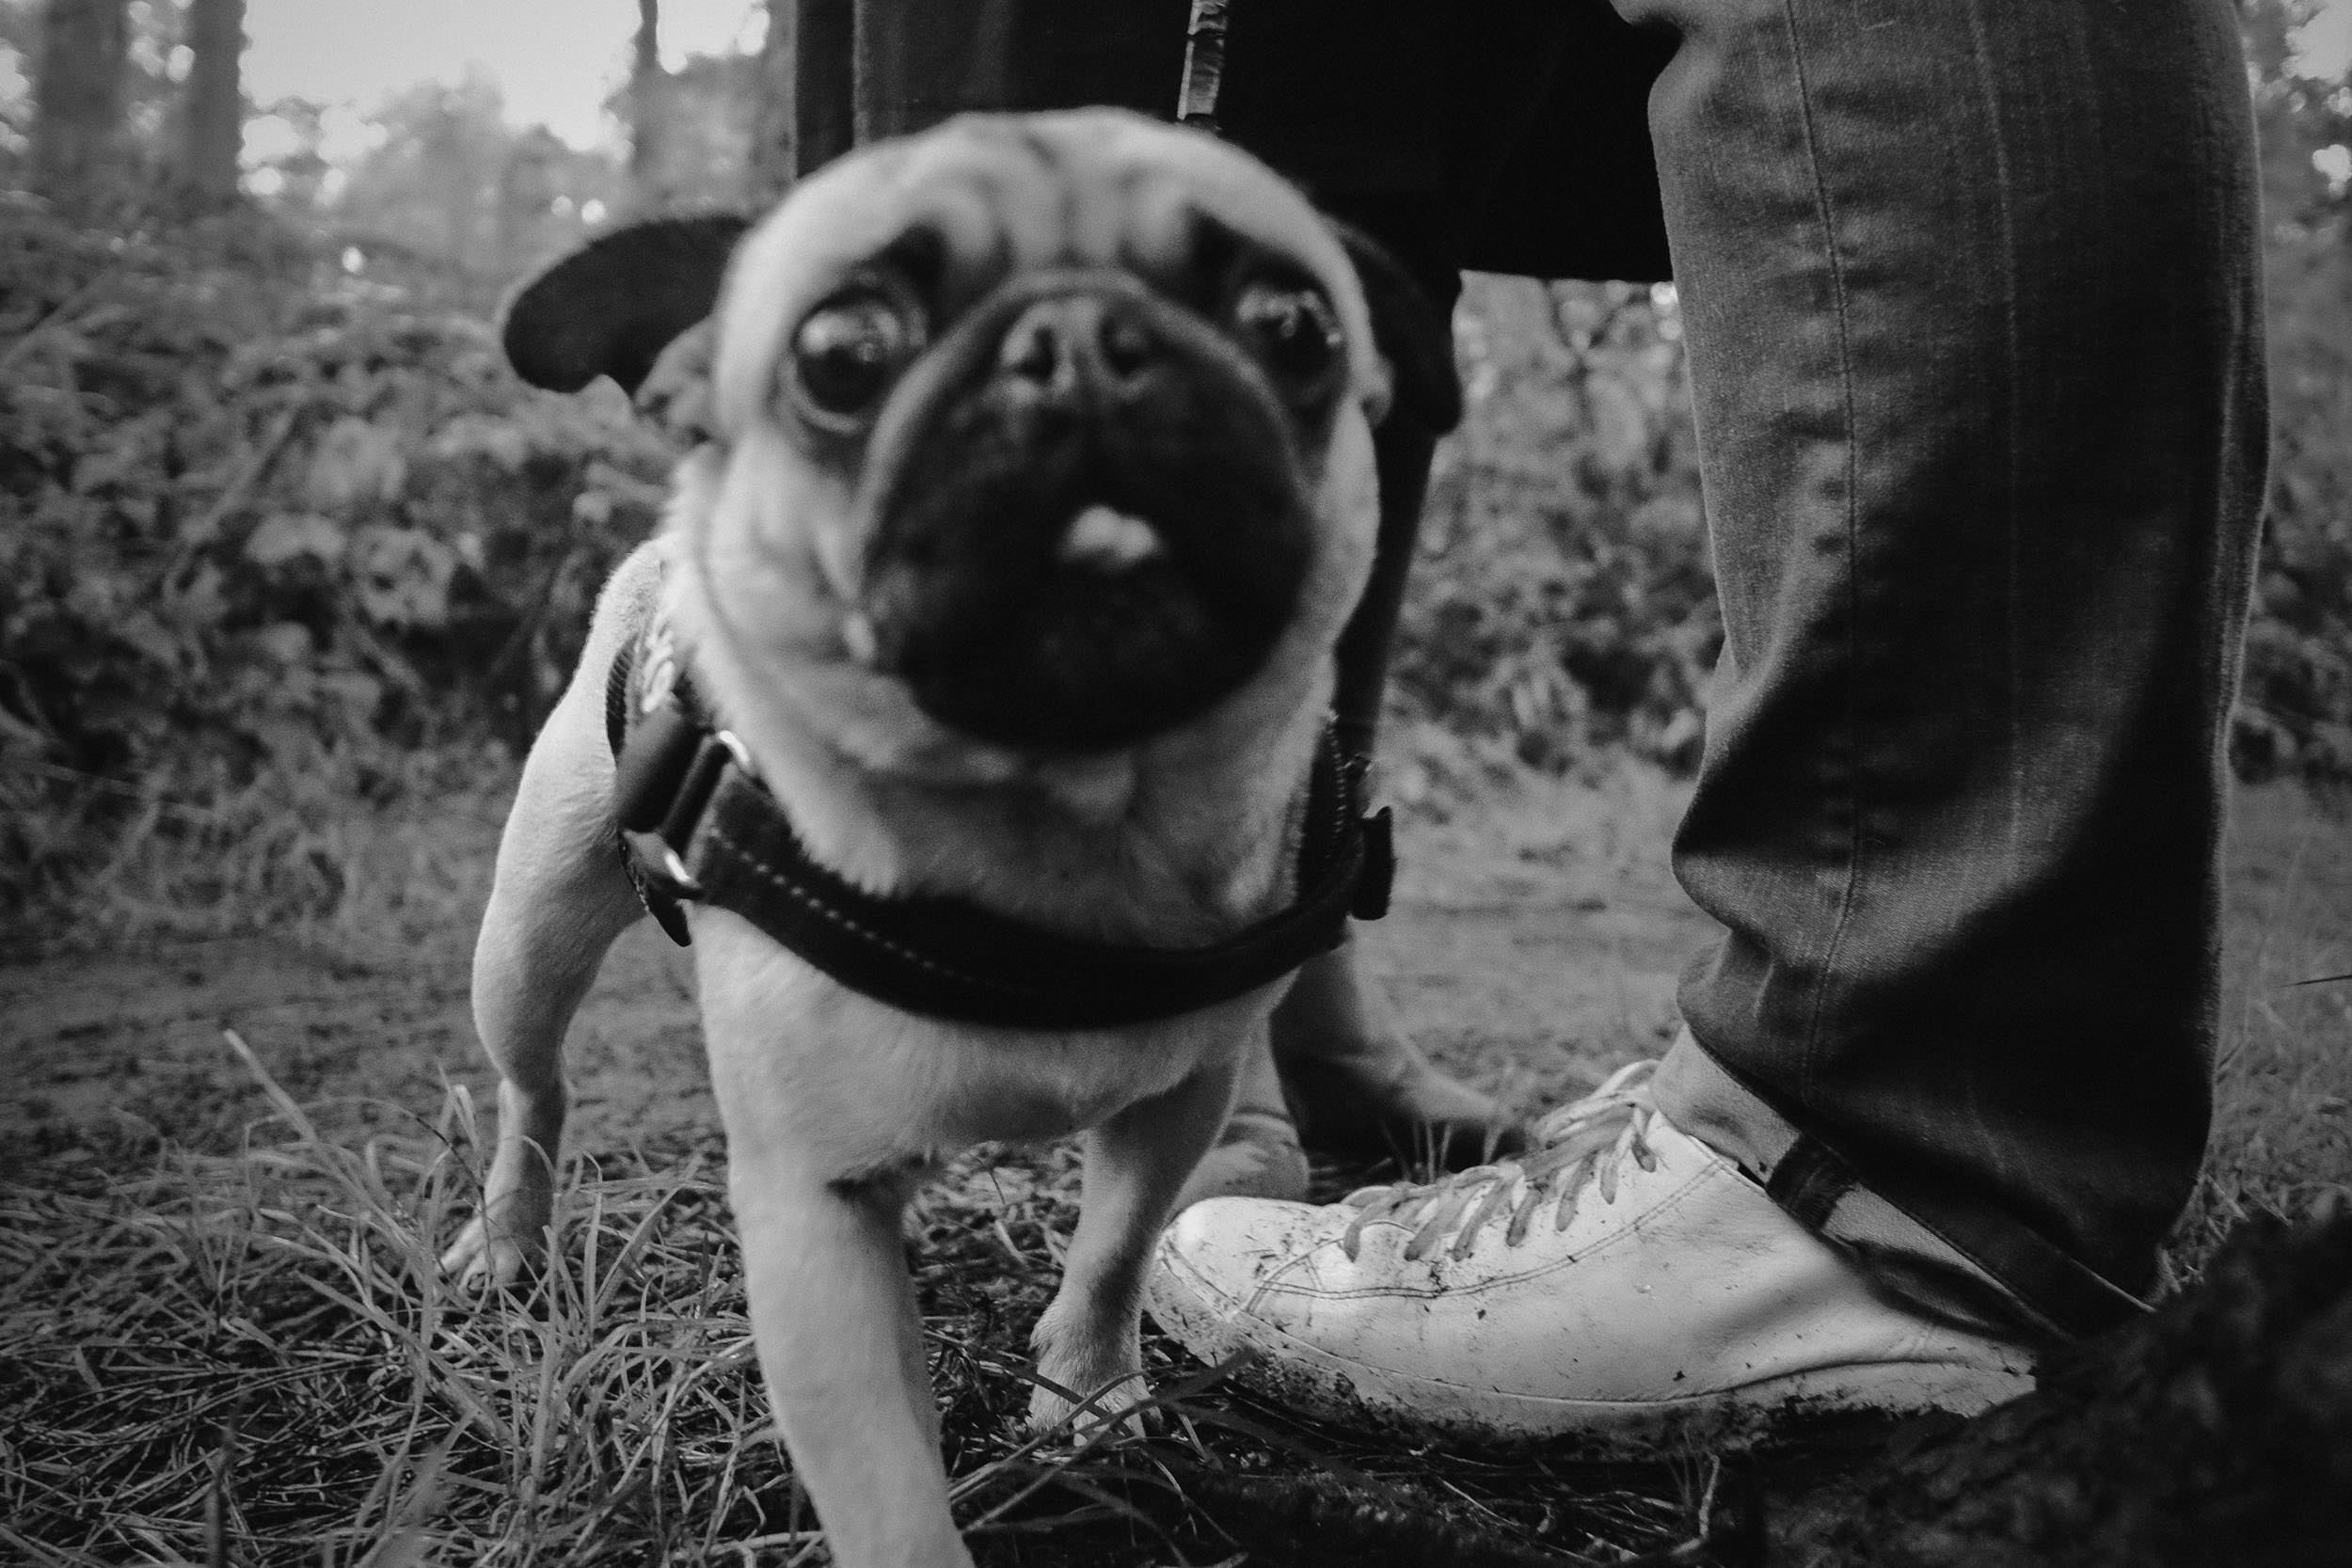 Funny black and white photo of couples feet with dog sticking out tongue